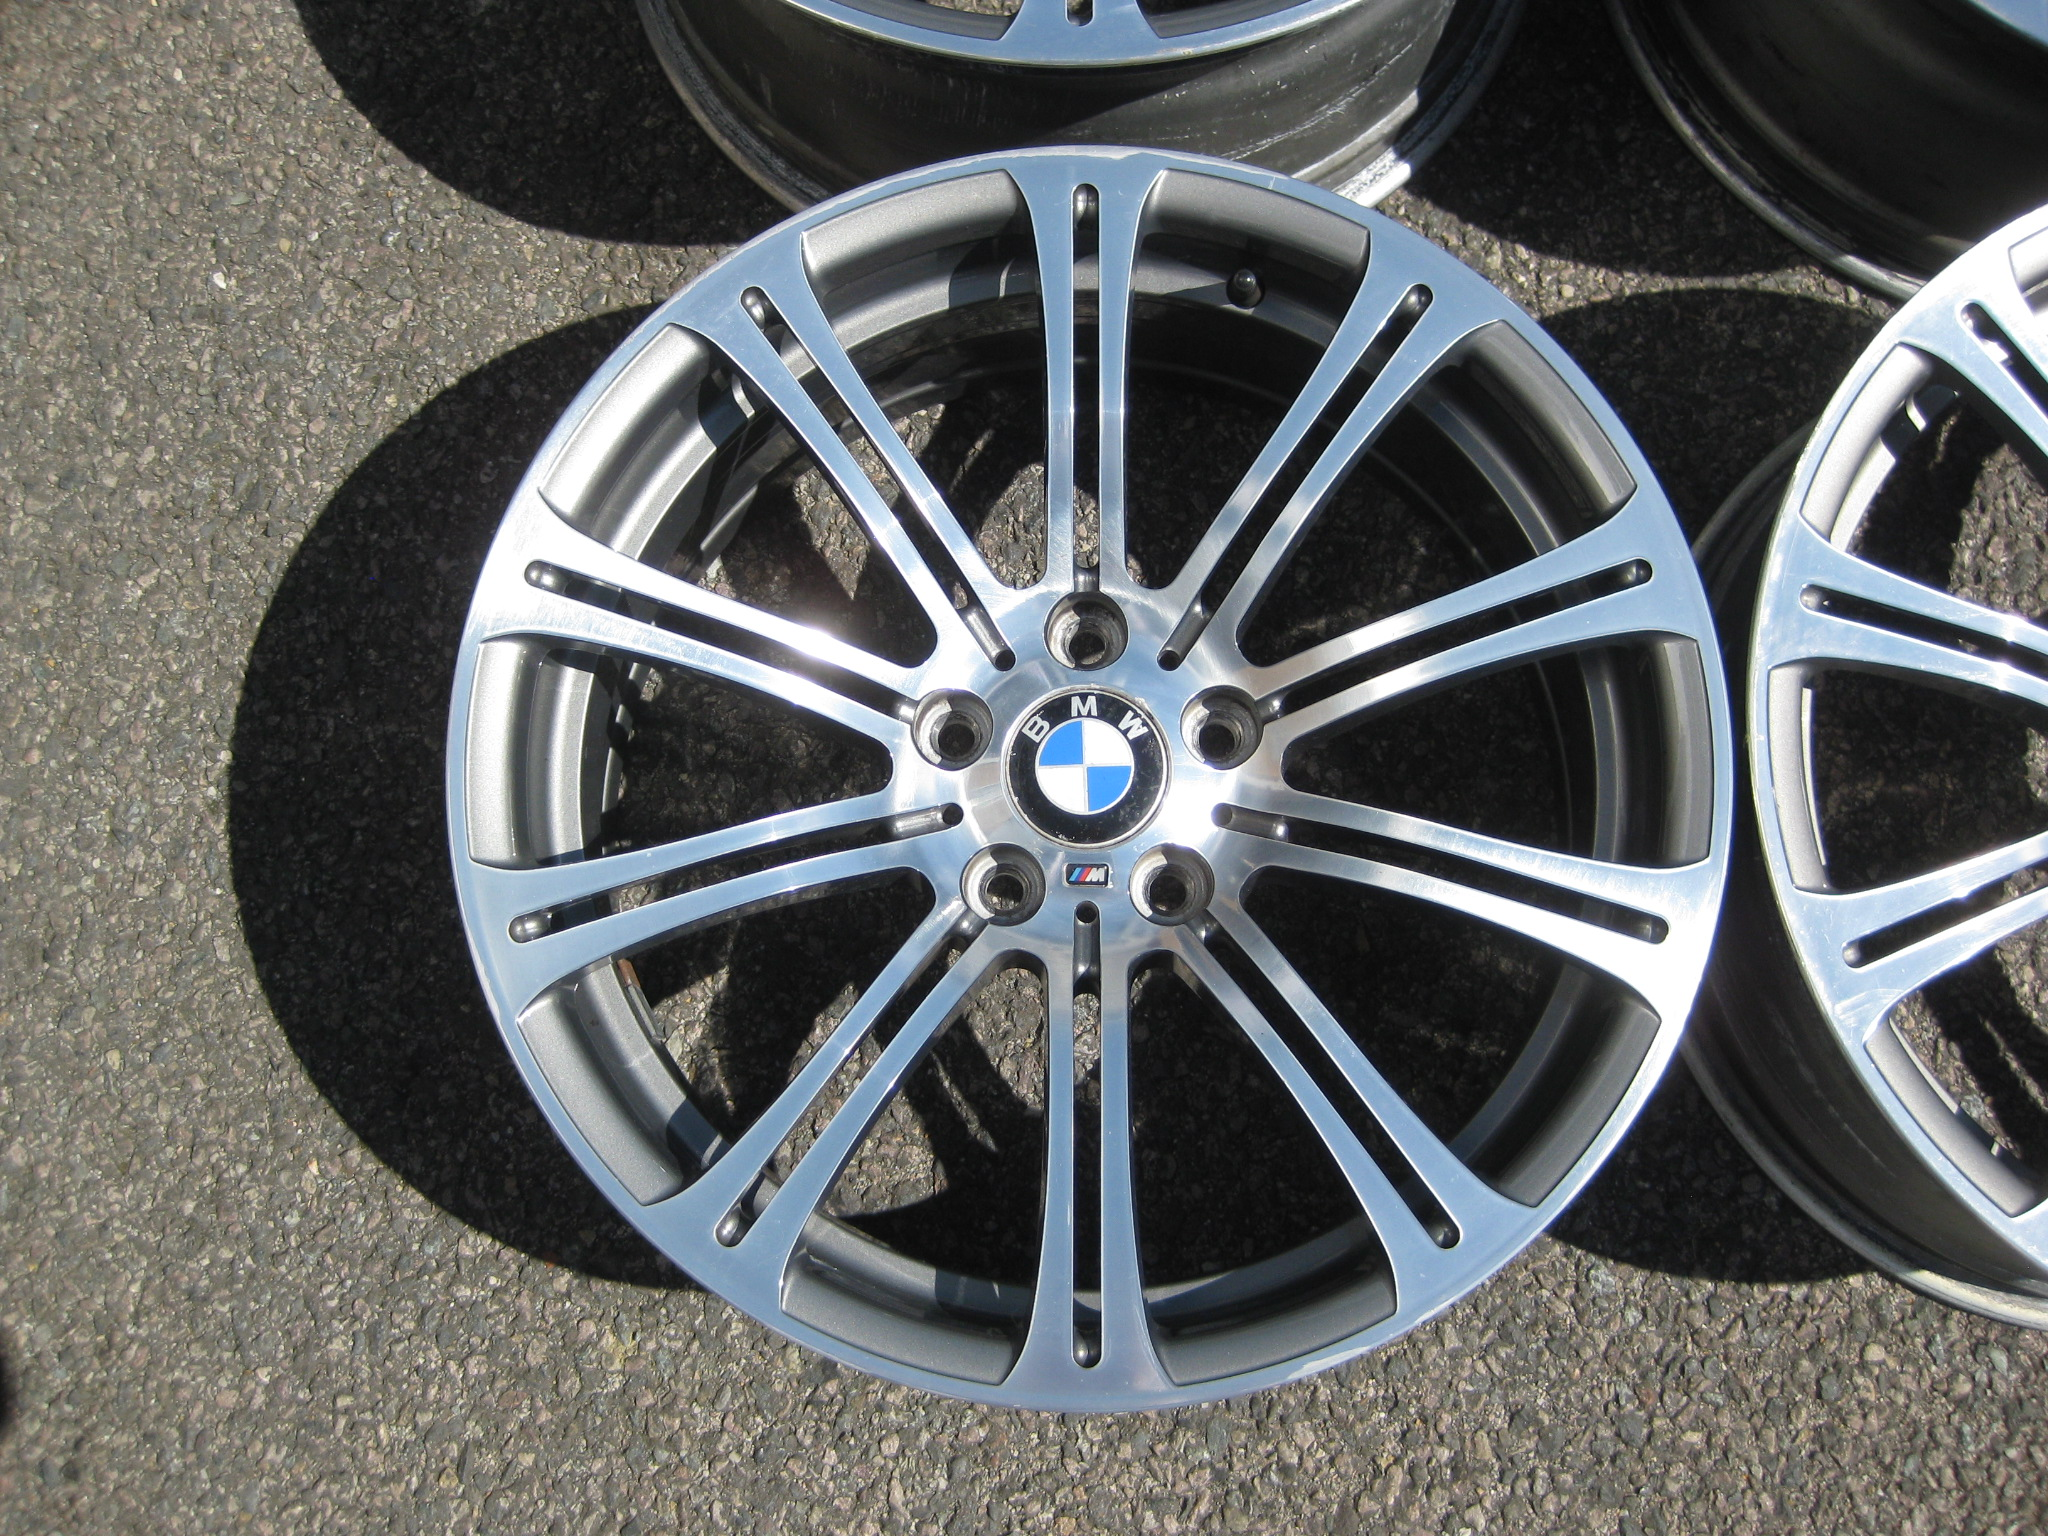 "USED 19"" GENUINE STYLE 220 E92 M3 POLISHED FORGED ALLOY WHEELS, WIDE REAR, GOOD ORIGINAL CONDITION"